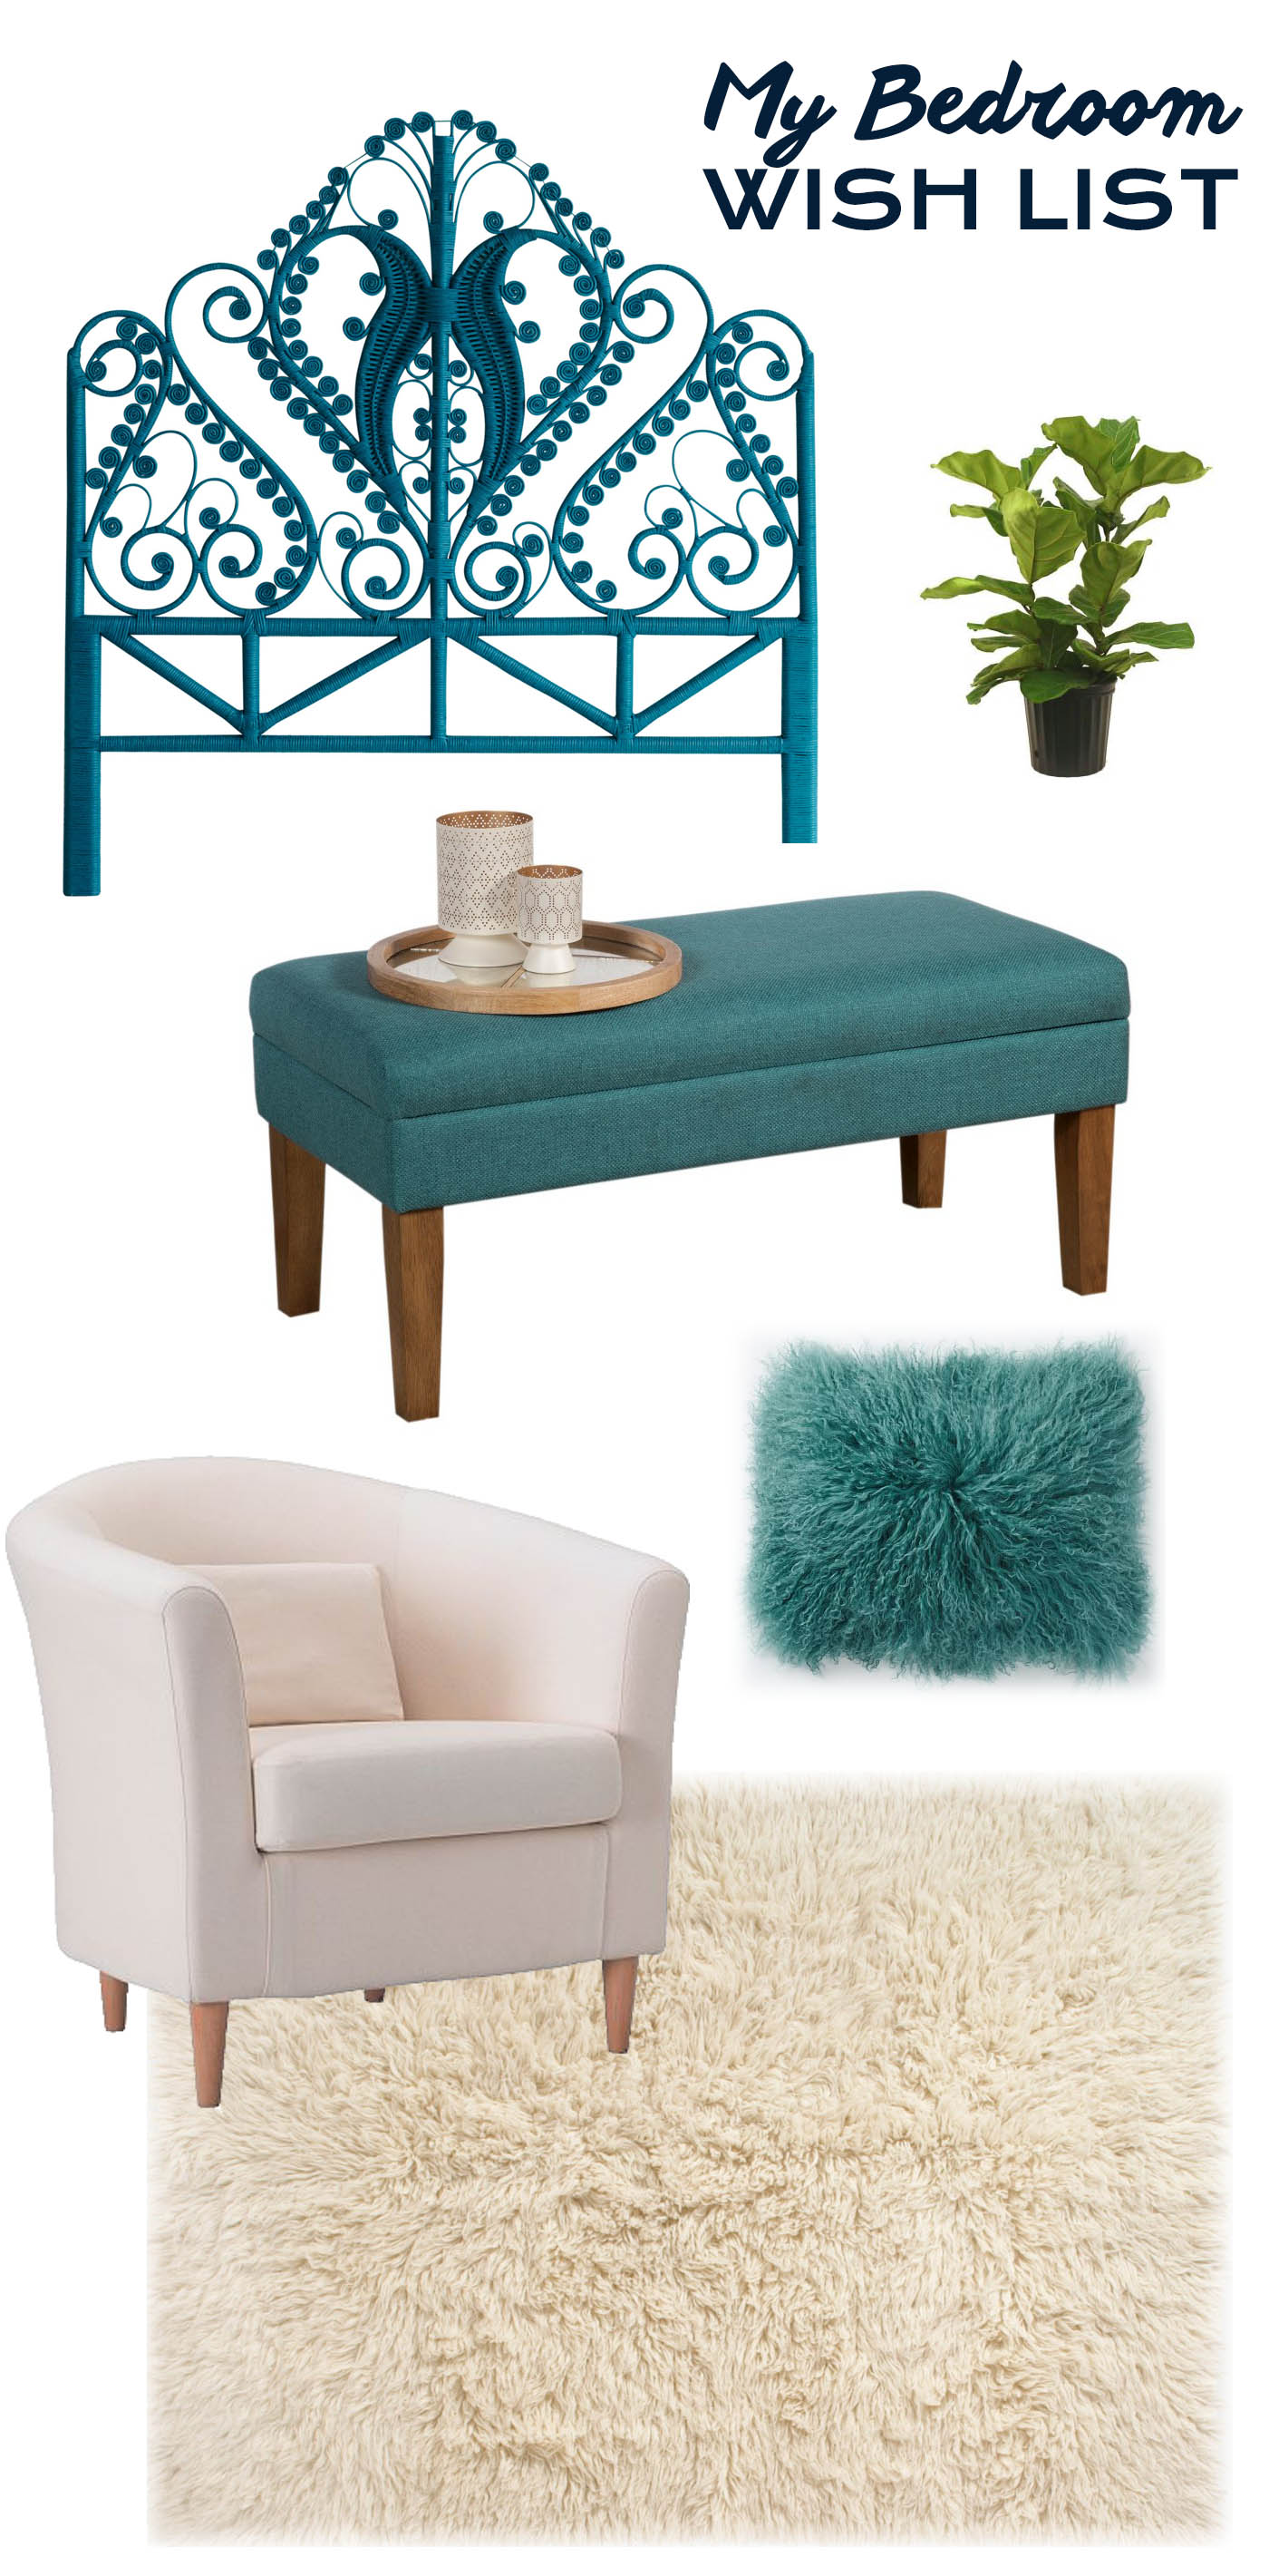 My Bedroom Wish List. Featuring a teal peacock bed, white flokati rug, teal storage bench, fiddle leaf fig tree, white chair, and a Mongolian fur pillow.